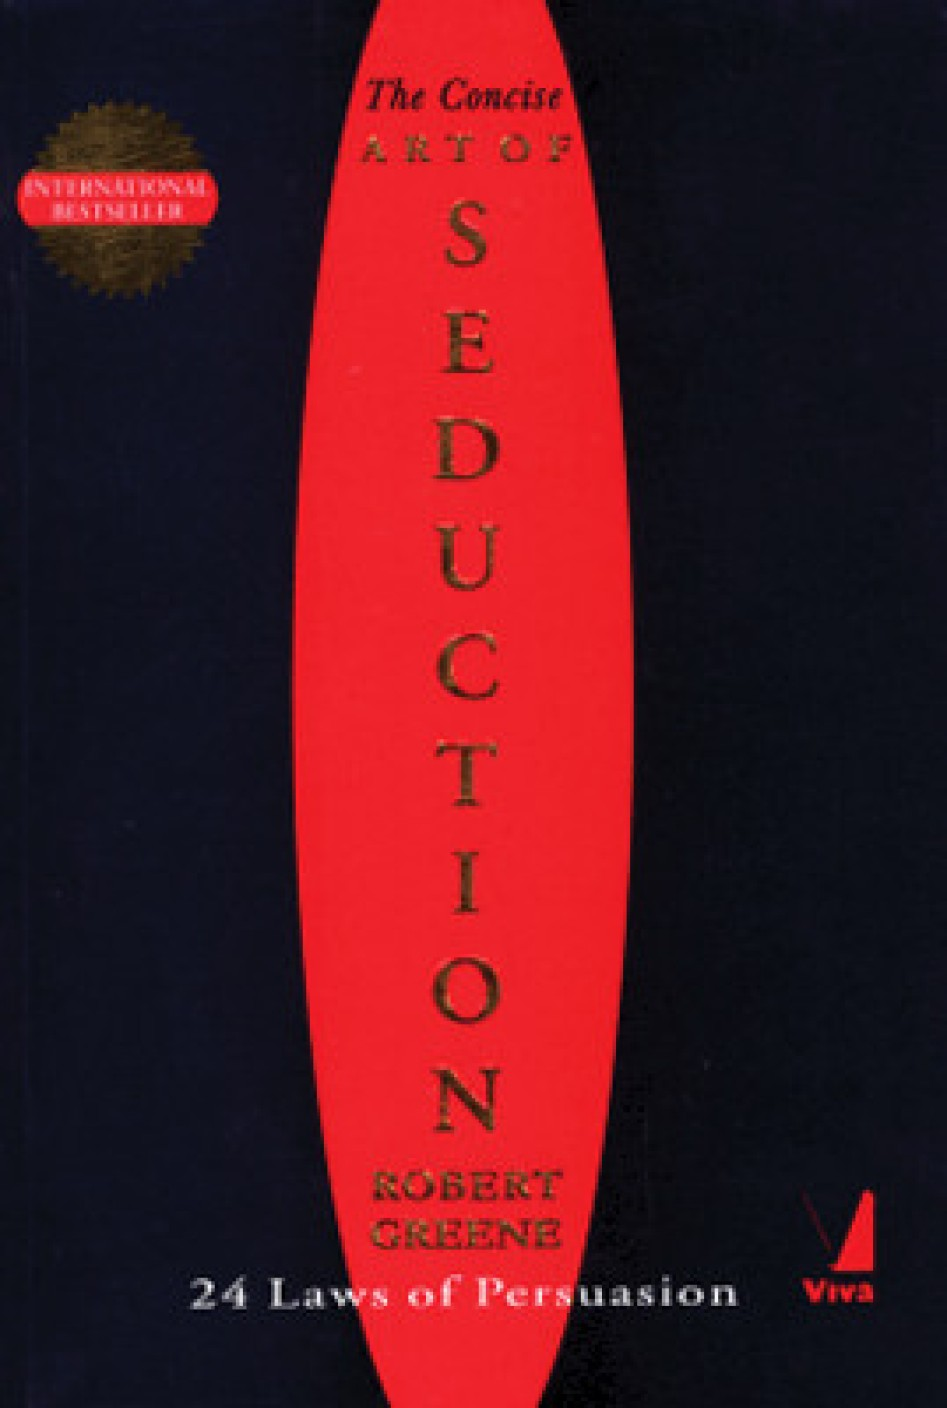 The Concise Art of Seduction: 24 Laws of Persuasion 1st